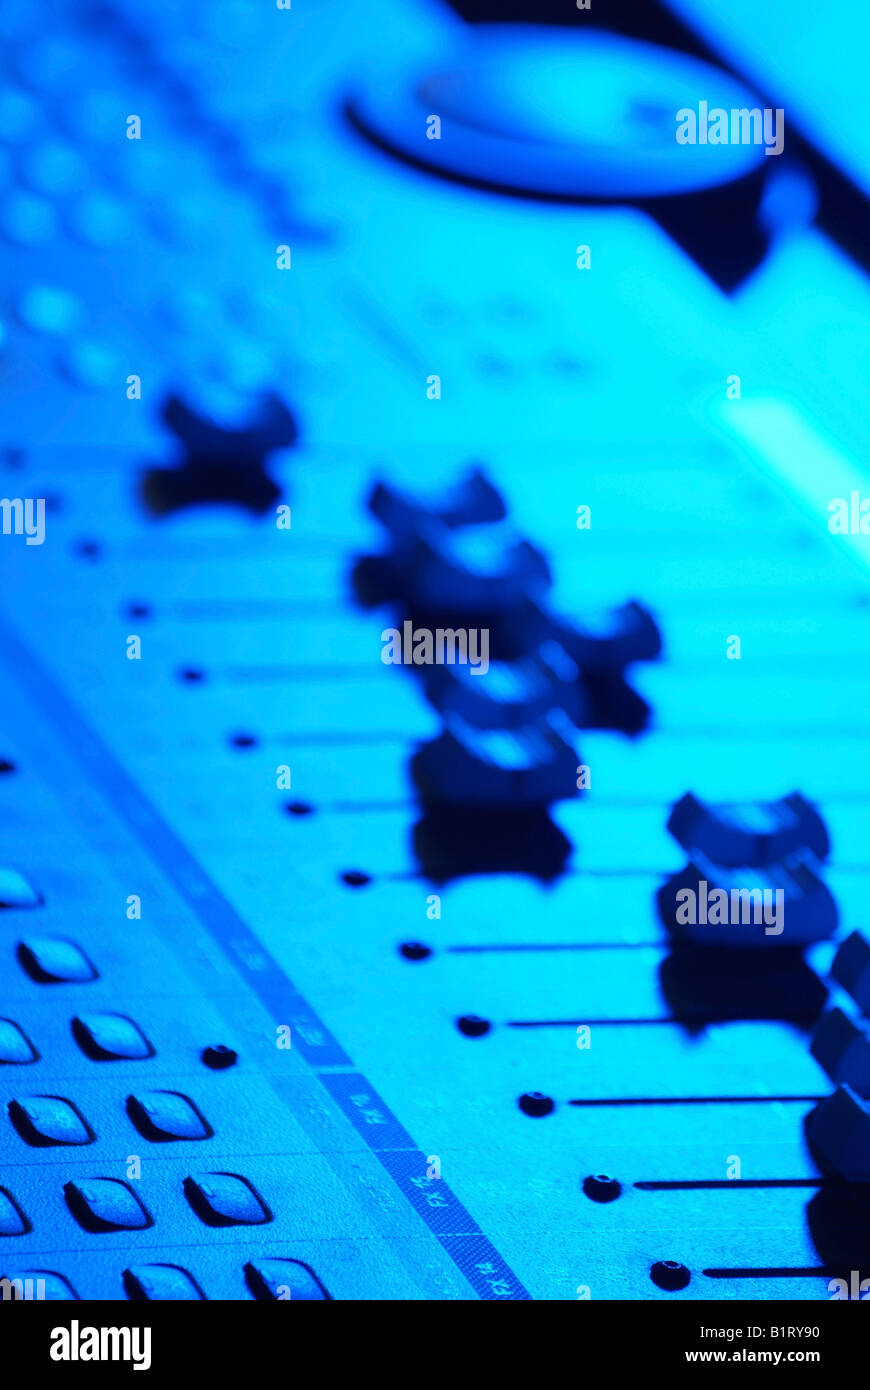 Slide controls, scroll bars, faders, professional mixing console, mixing desk, soundboard - Stock Image